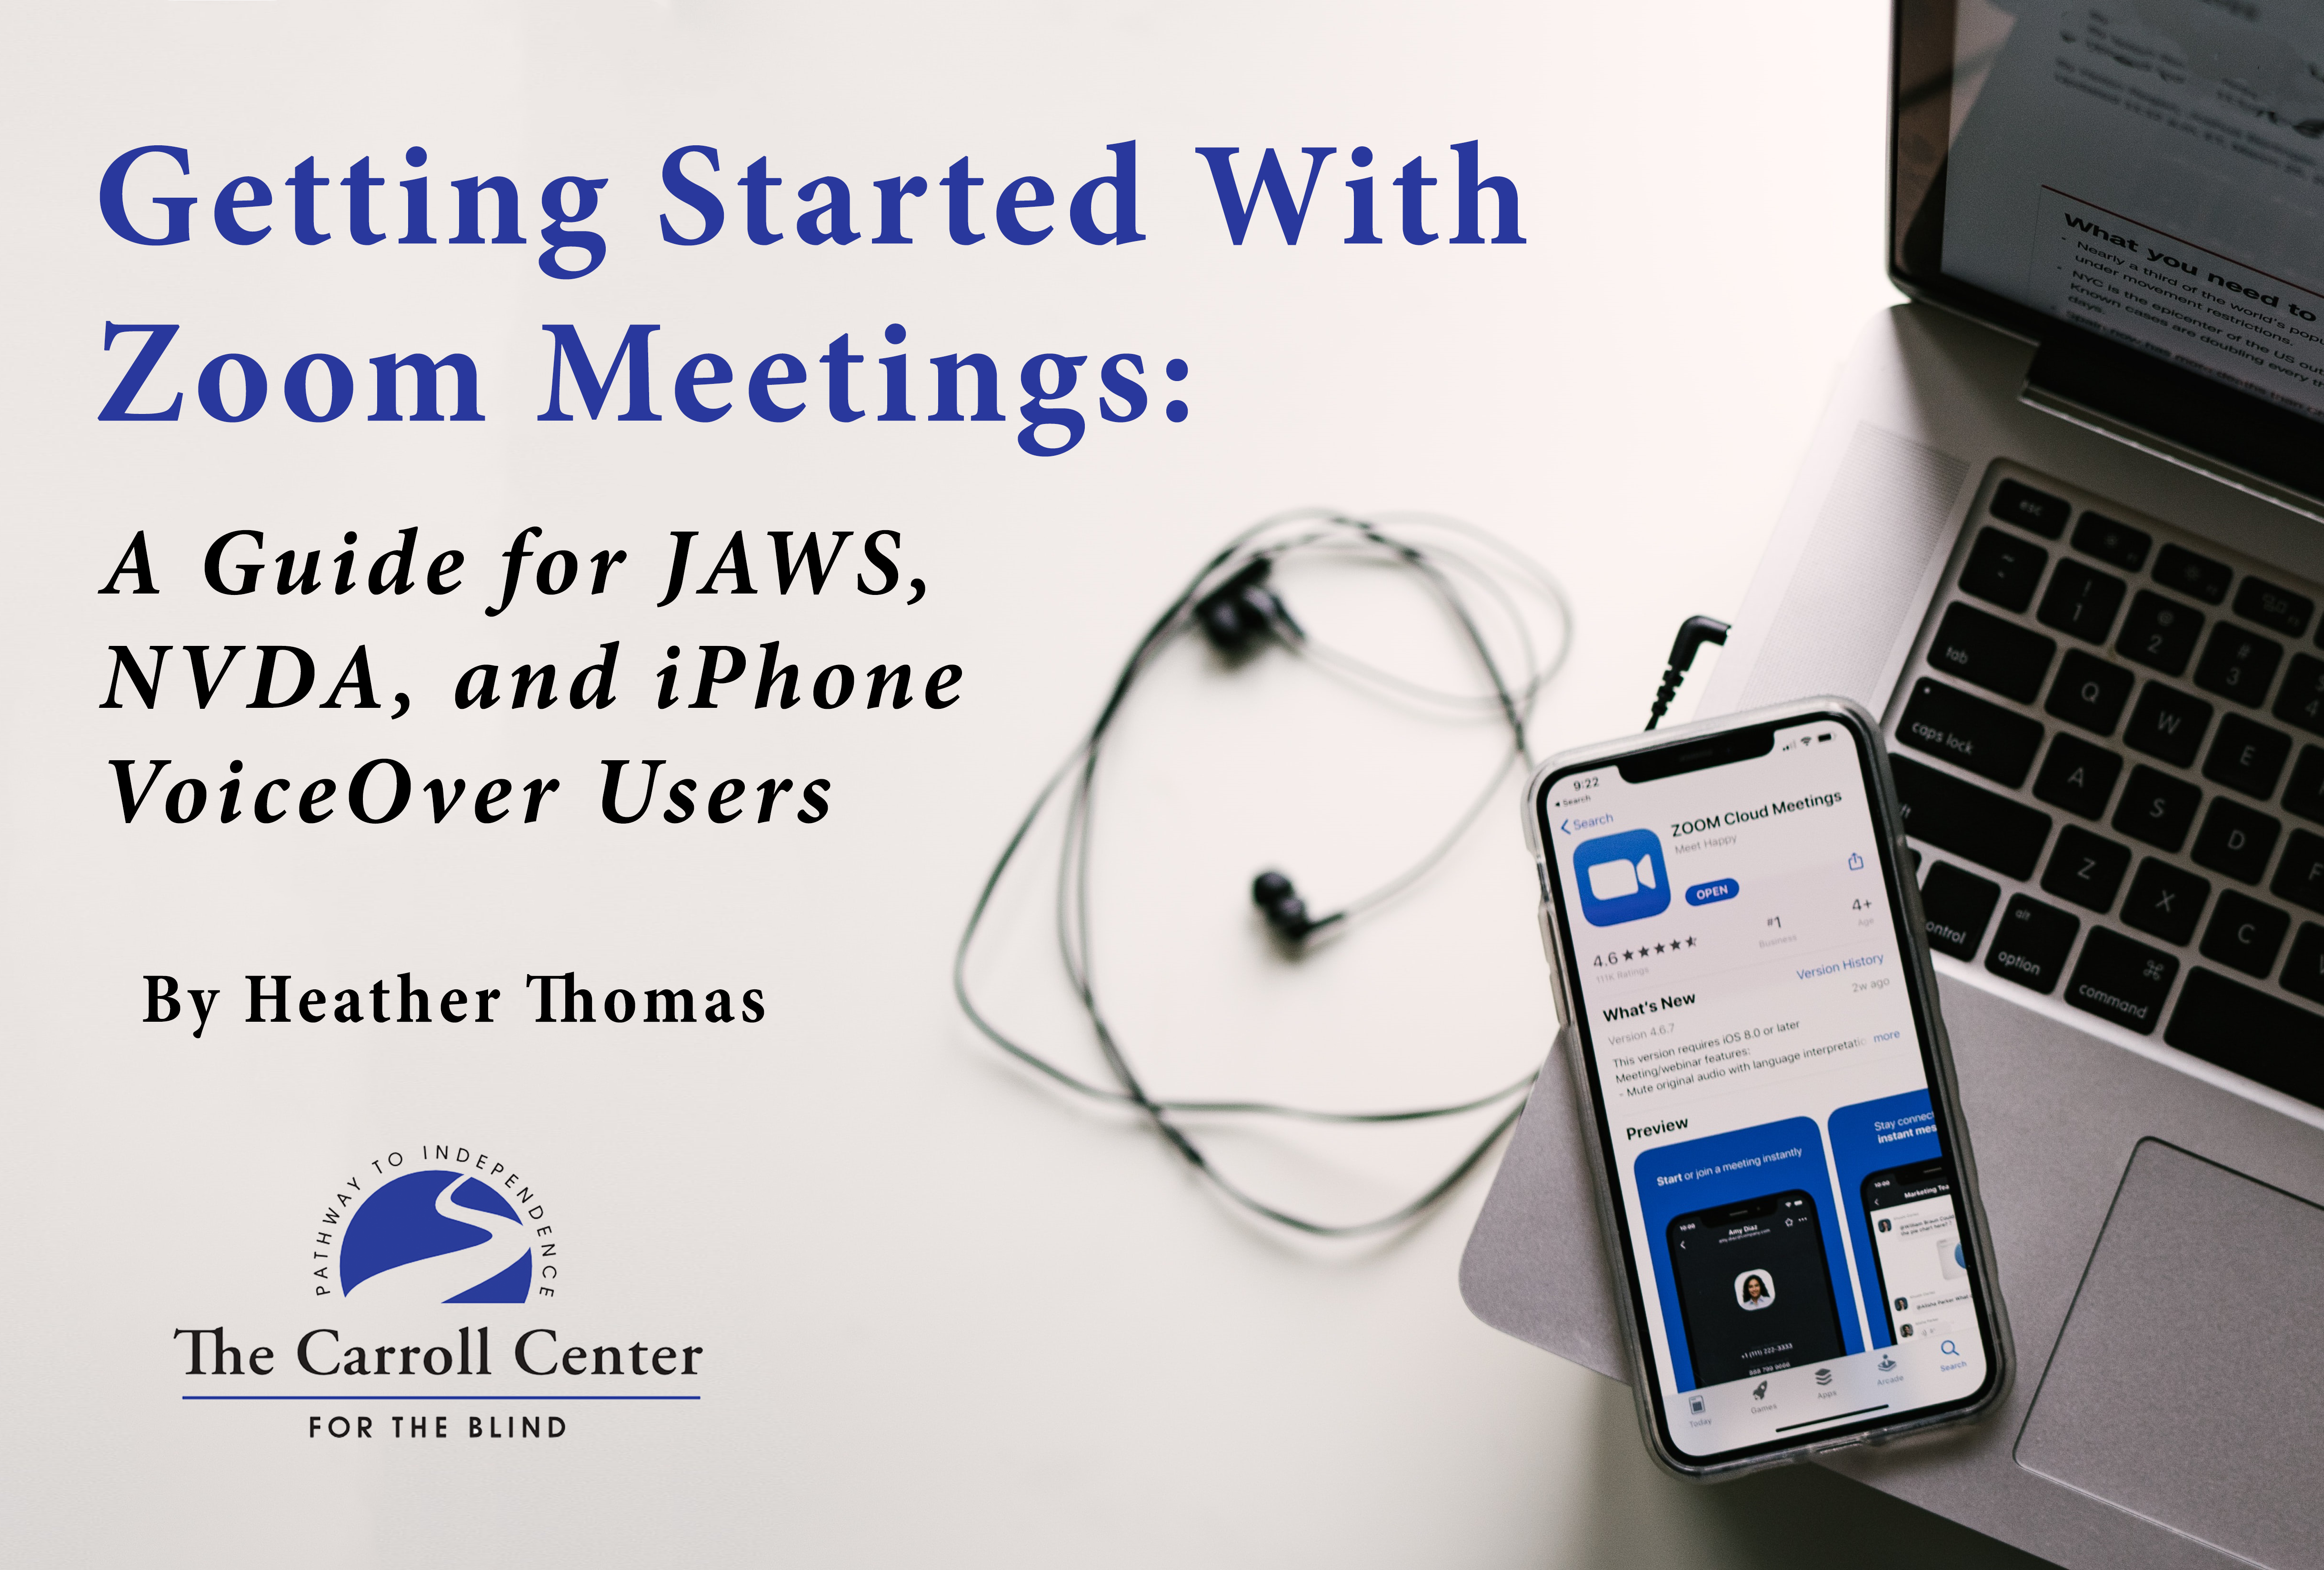 """The cover for """"Getting Started With Zoom Meetings: A Guide for JAWS, NVDA, and iPhone VoiceOver Users."""" The book title and written by Heather Thomas appears above the Carroll Center for the Blind logo. On the right side features a pair of headphones and an iPhone displaying the Zoom app resting on top of a laptop keyboard."""